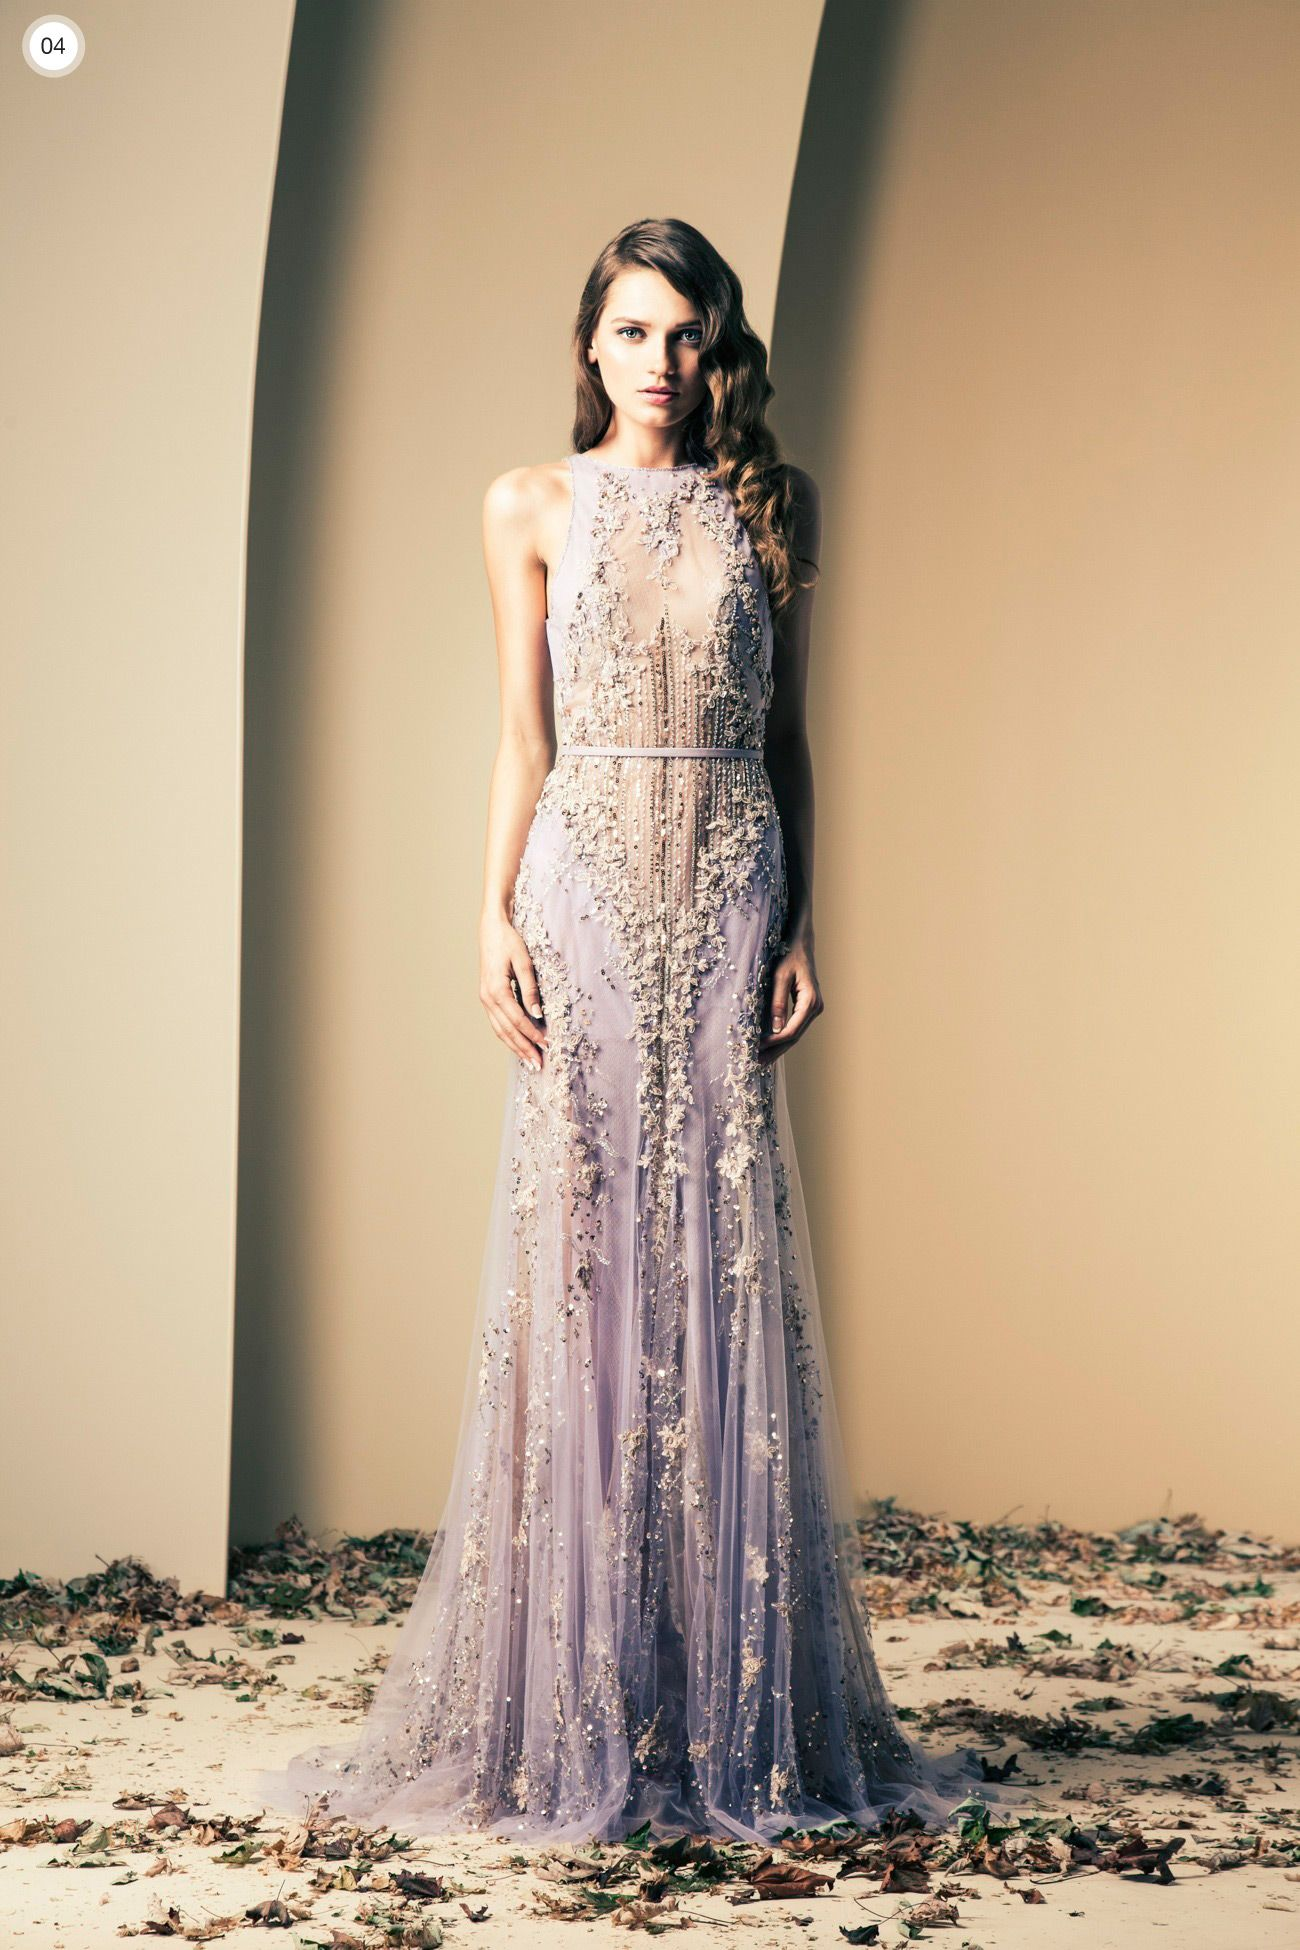 Ziad Nekad Haute Couture Fall-Winter 2013-2014 blossoms for spring ...